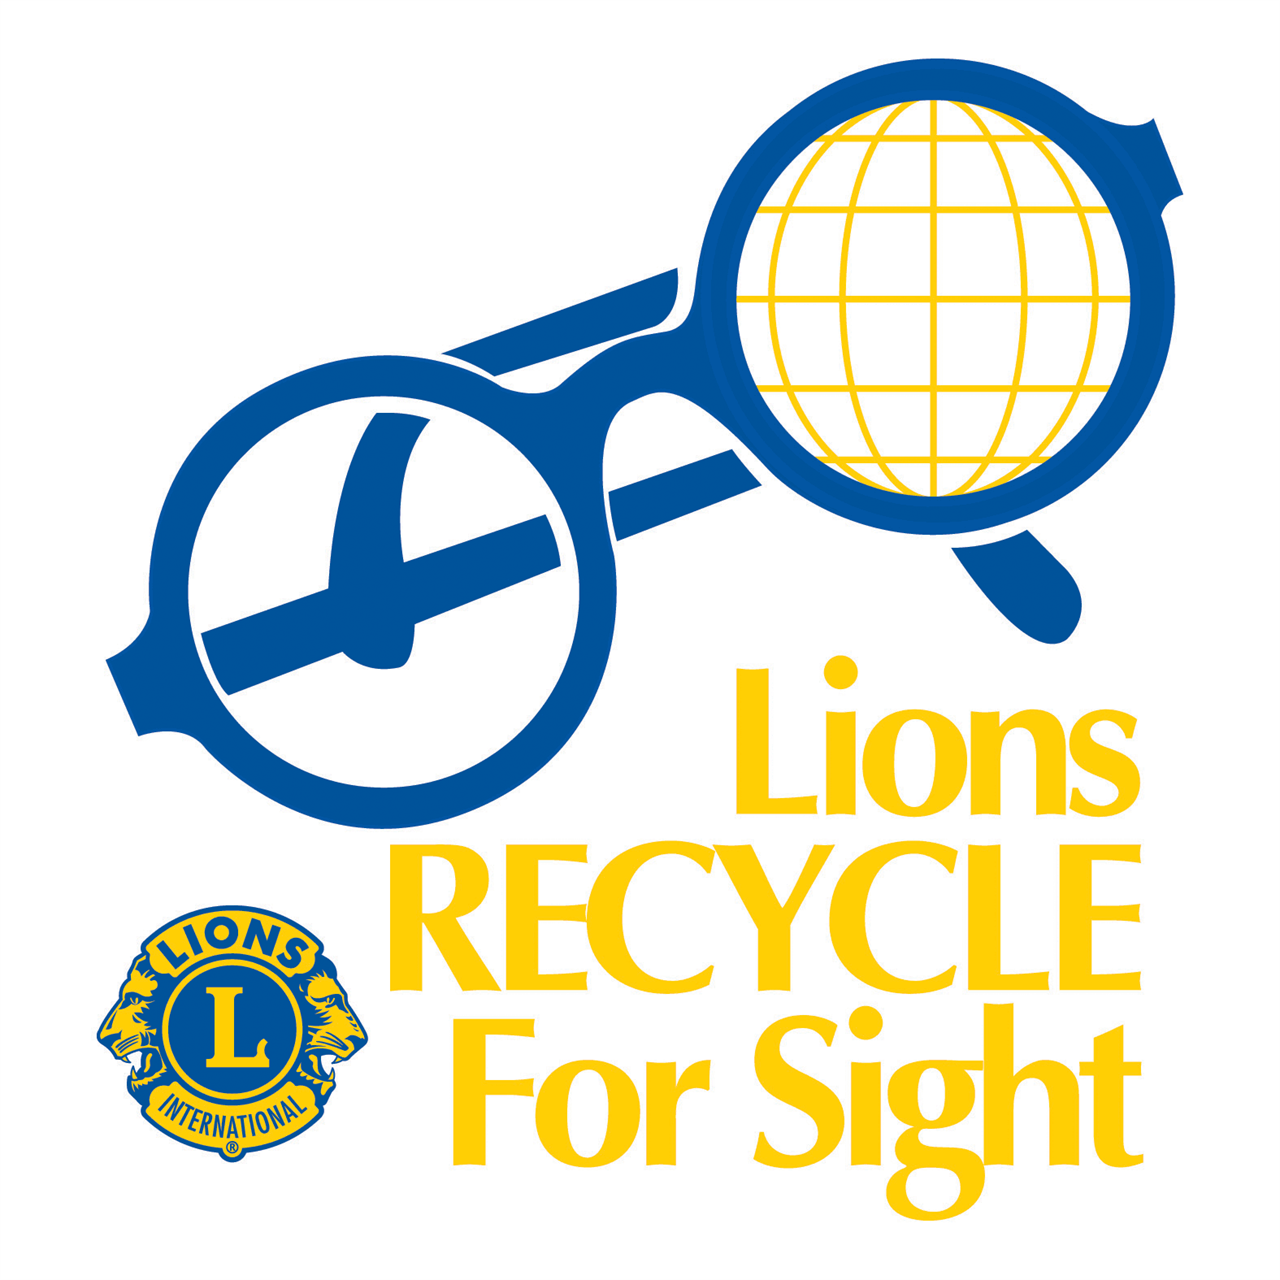 recycle eyeglasses